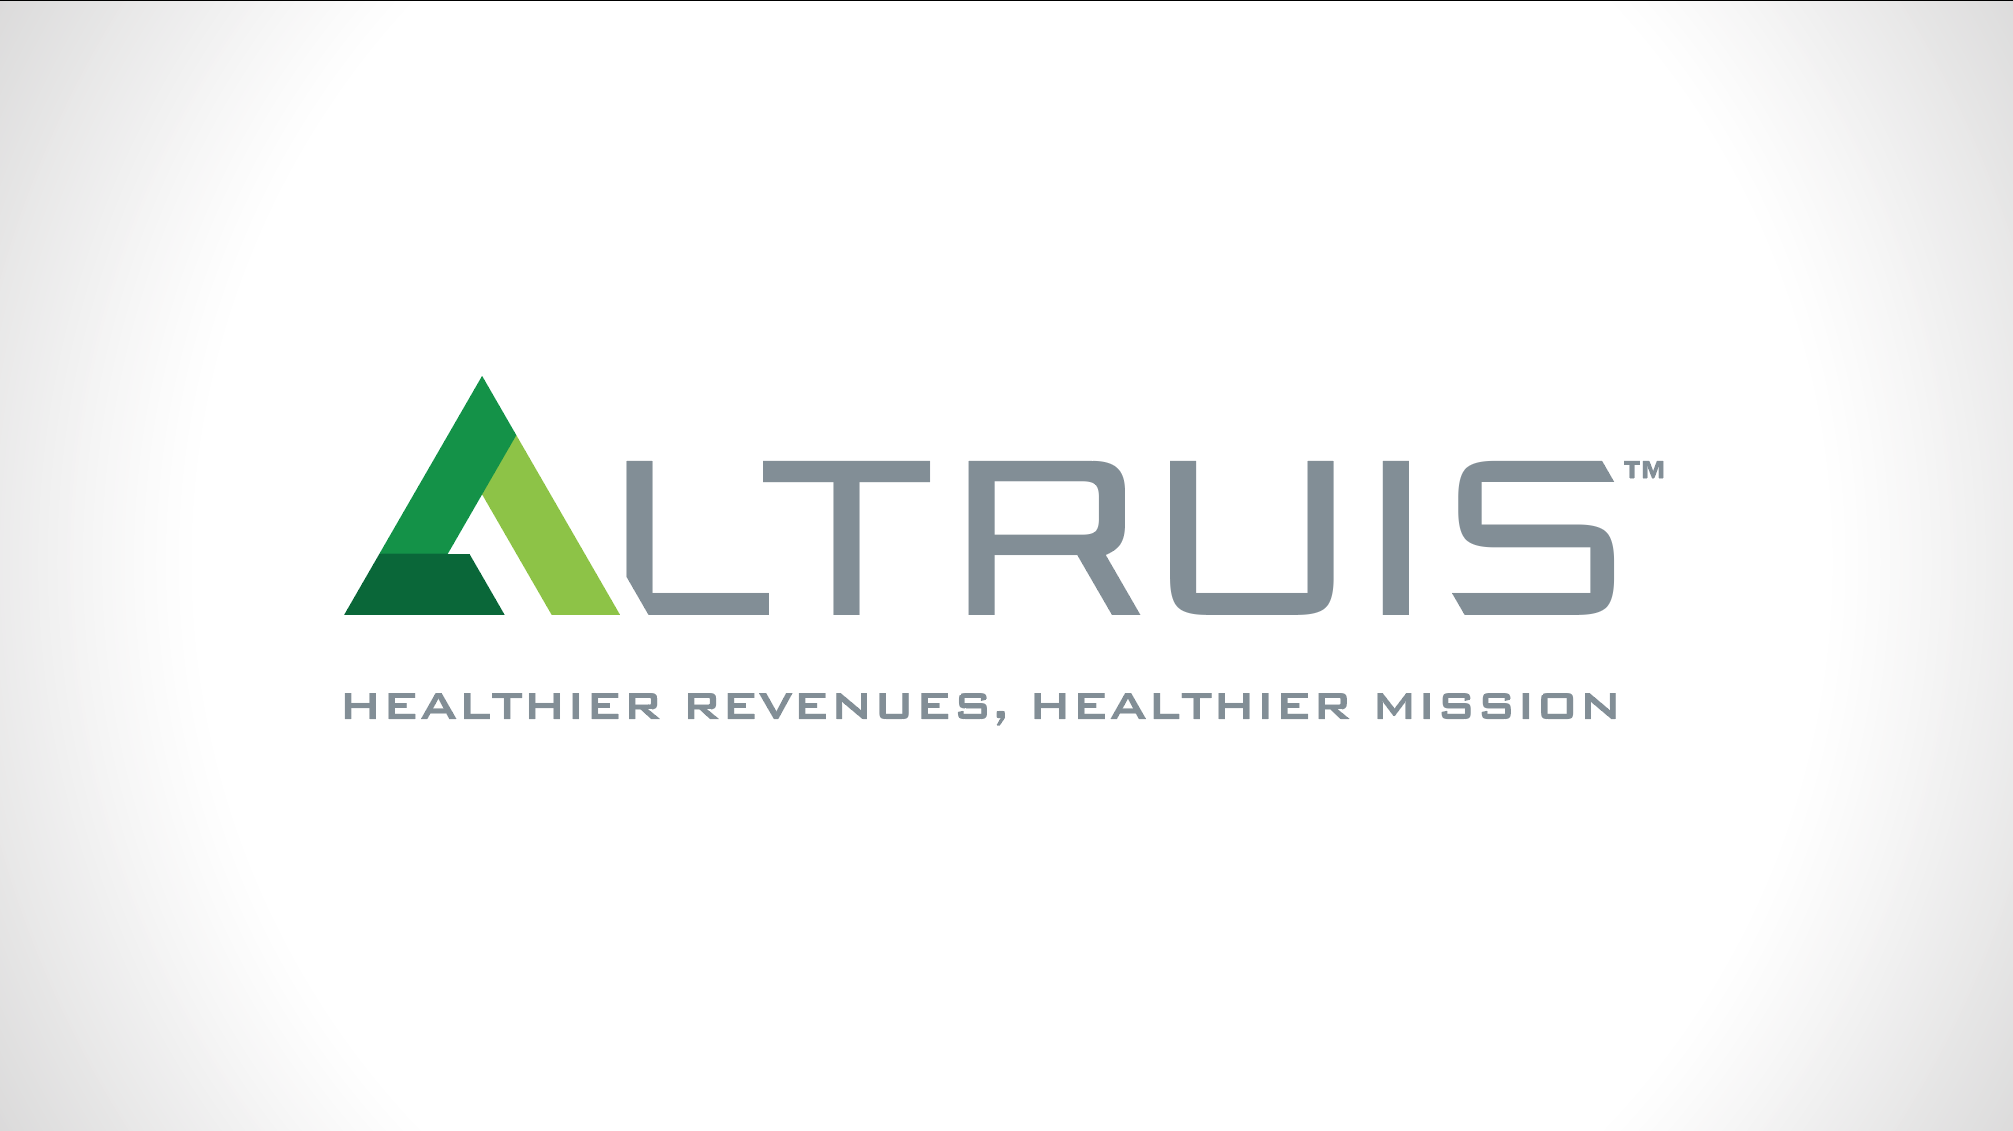 altruis-altruis design marketing digital branding web photography